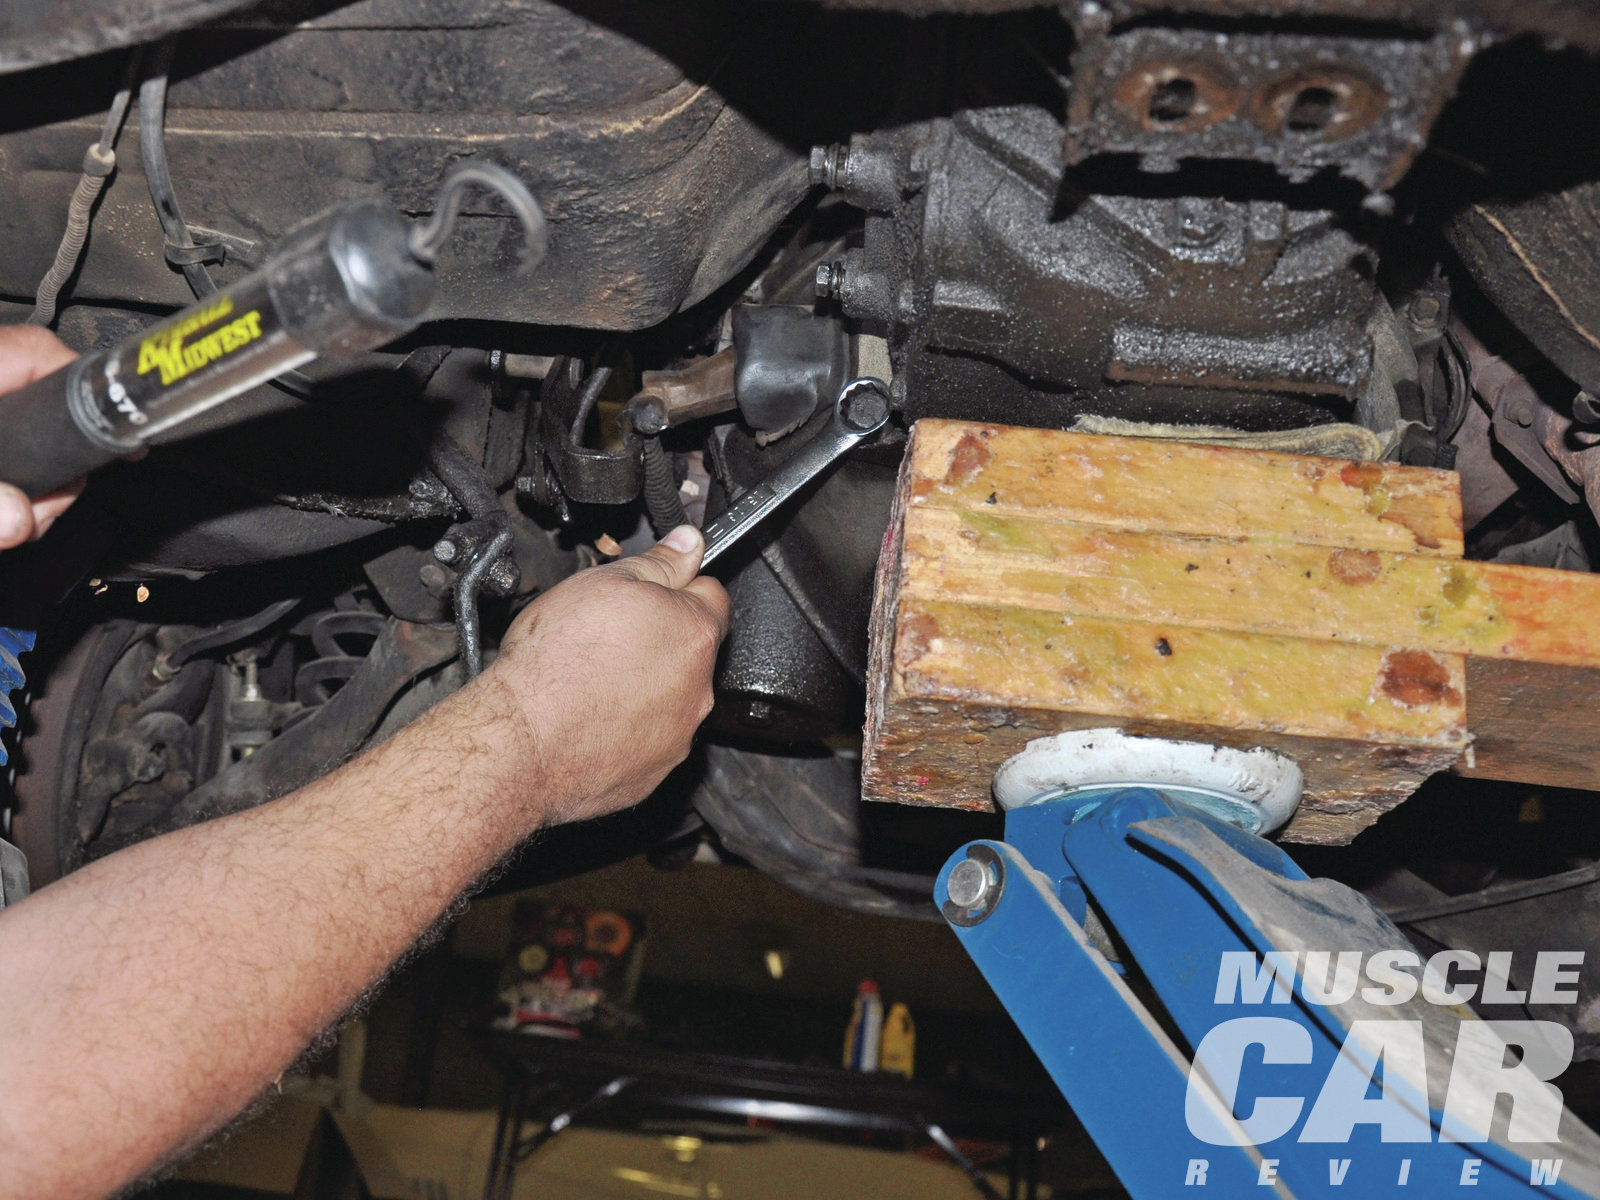 Take out the bolts from the transmission mount on the transmission crossmember. A floor jack with a block of wood supports the manual transmission while you remove the four bolts. Once the bolts are gone, have a buddy lower the jack while you slowly pull the transmission out.